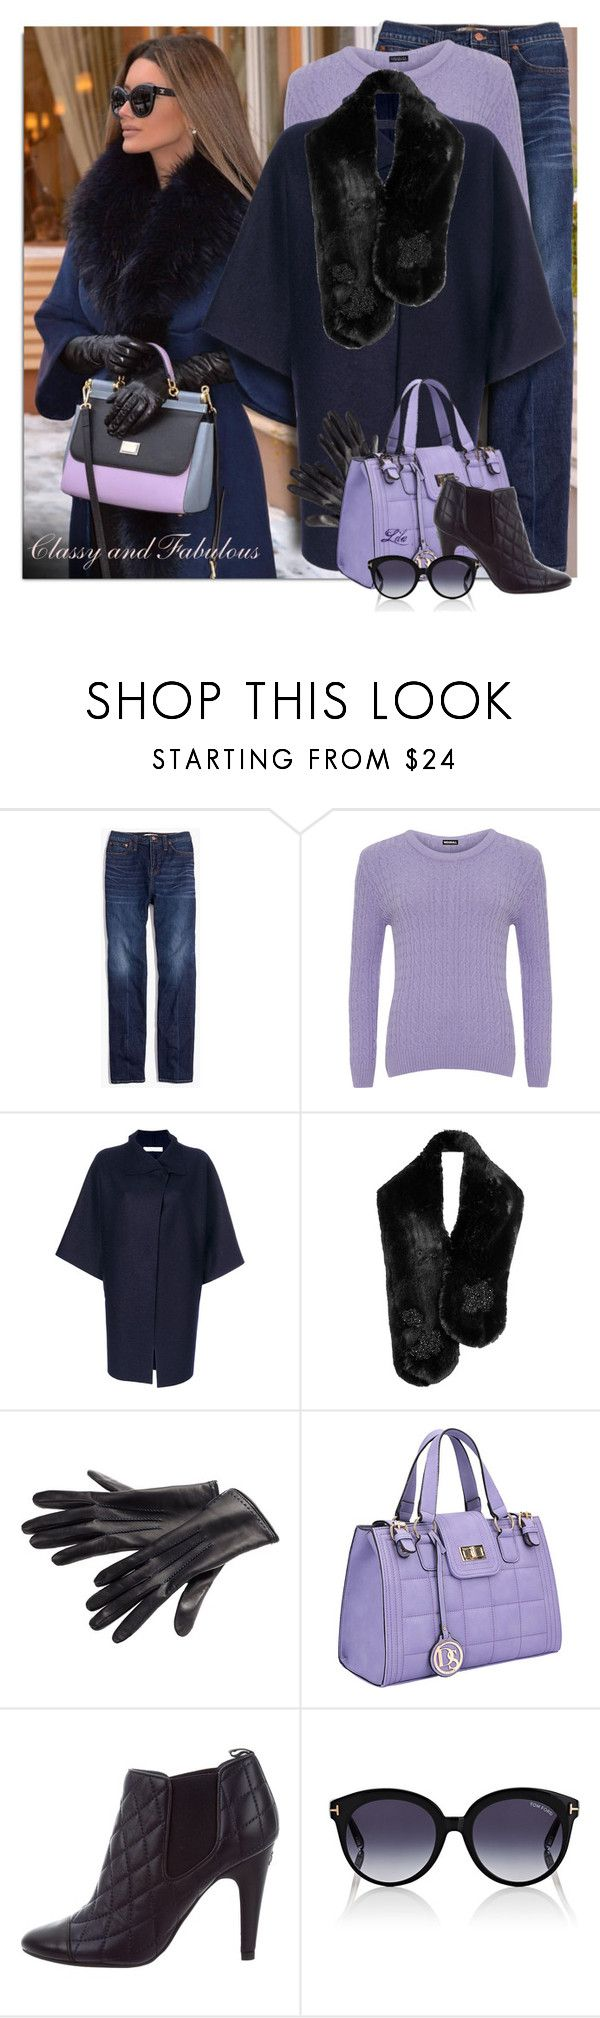 """""""Classy and Fabulous"""" by breathing-style ❤ liked on Polyvore featuring Madewell, WearAll, Harris Wharf London, Simone Rocha, Dasein, Chanel and Tom Ford"""